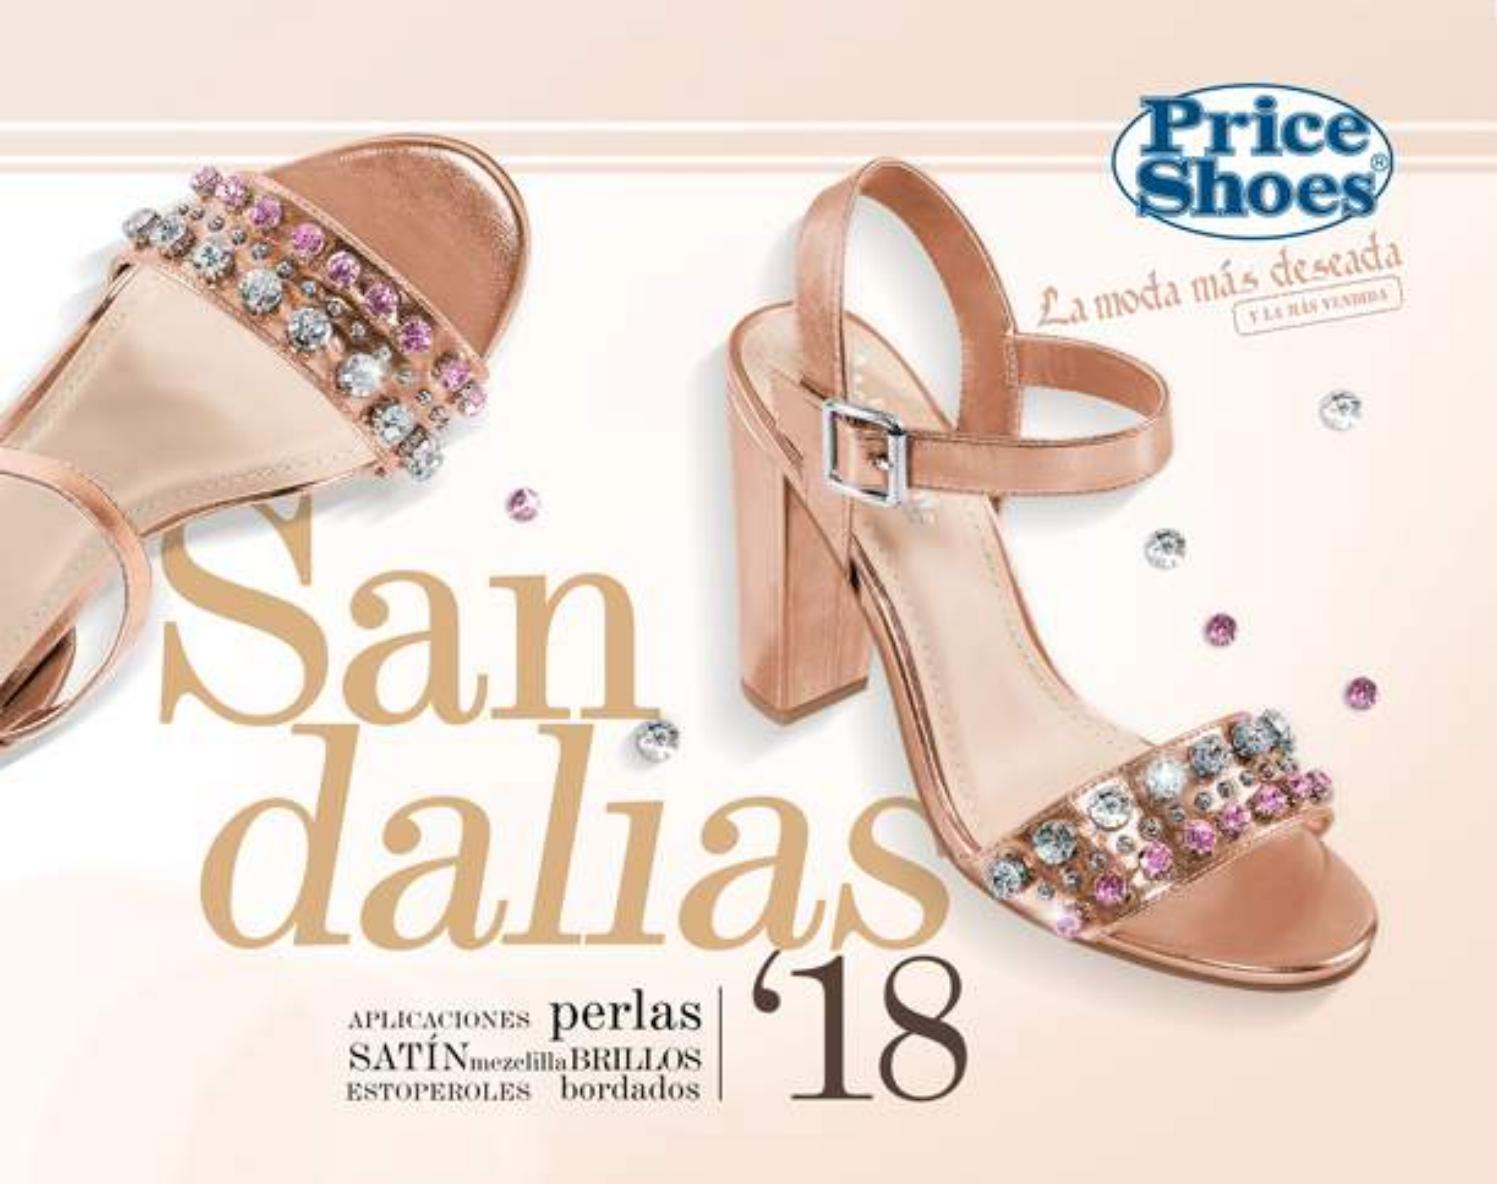 Price Shoes Sandalias by Price Shoes Oficial - issuu 6cd51097cee00